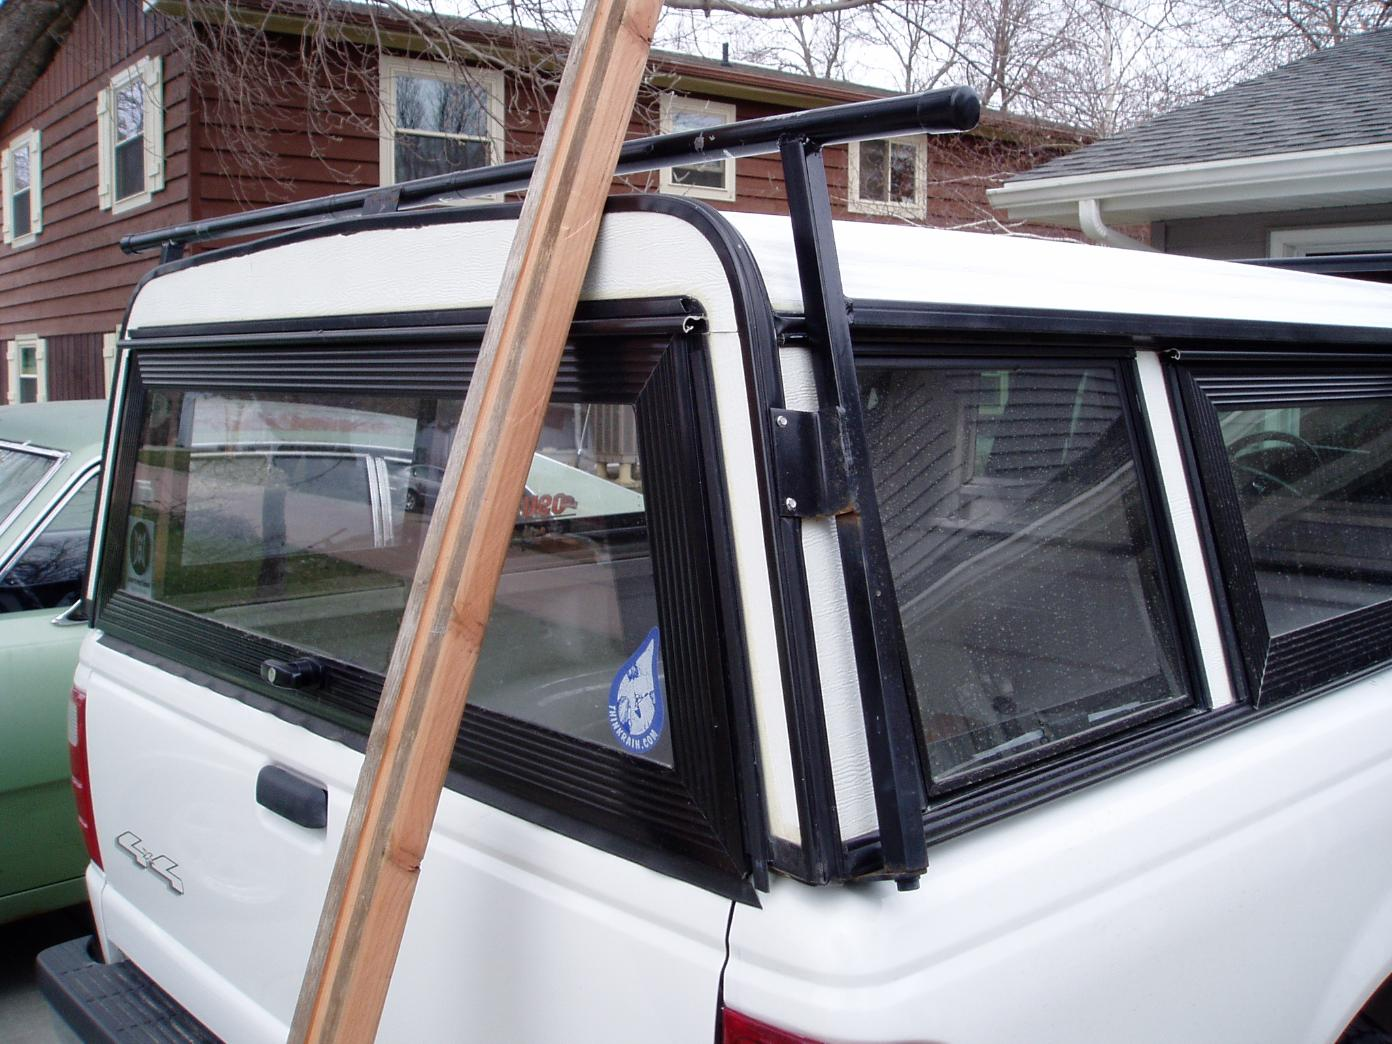 Canoe load bar not mounted